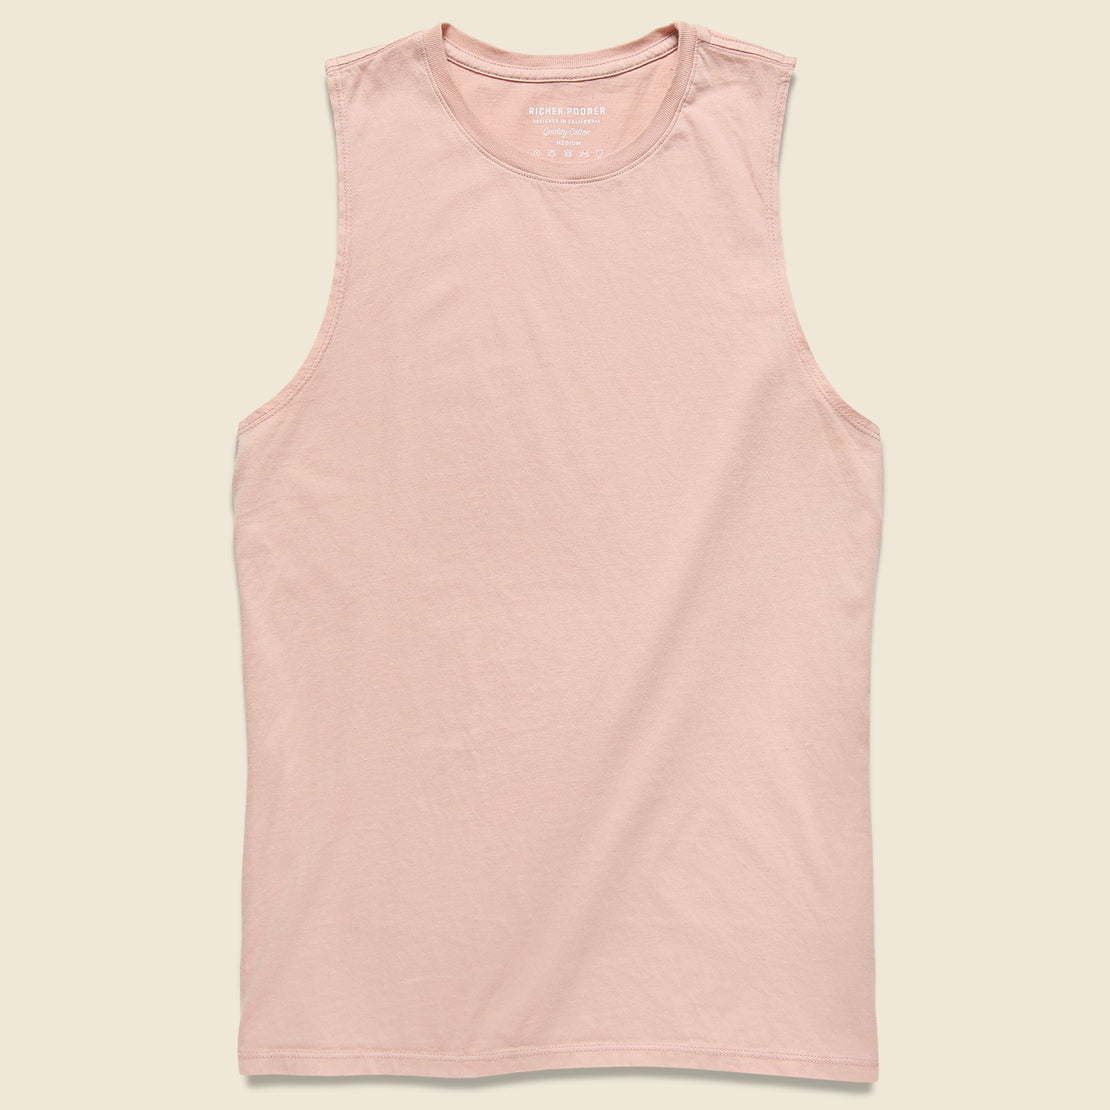 Richer Poorer Muscle Tank - Blush